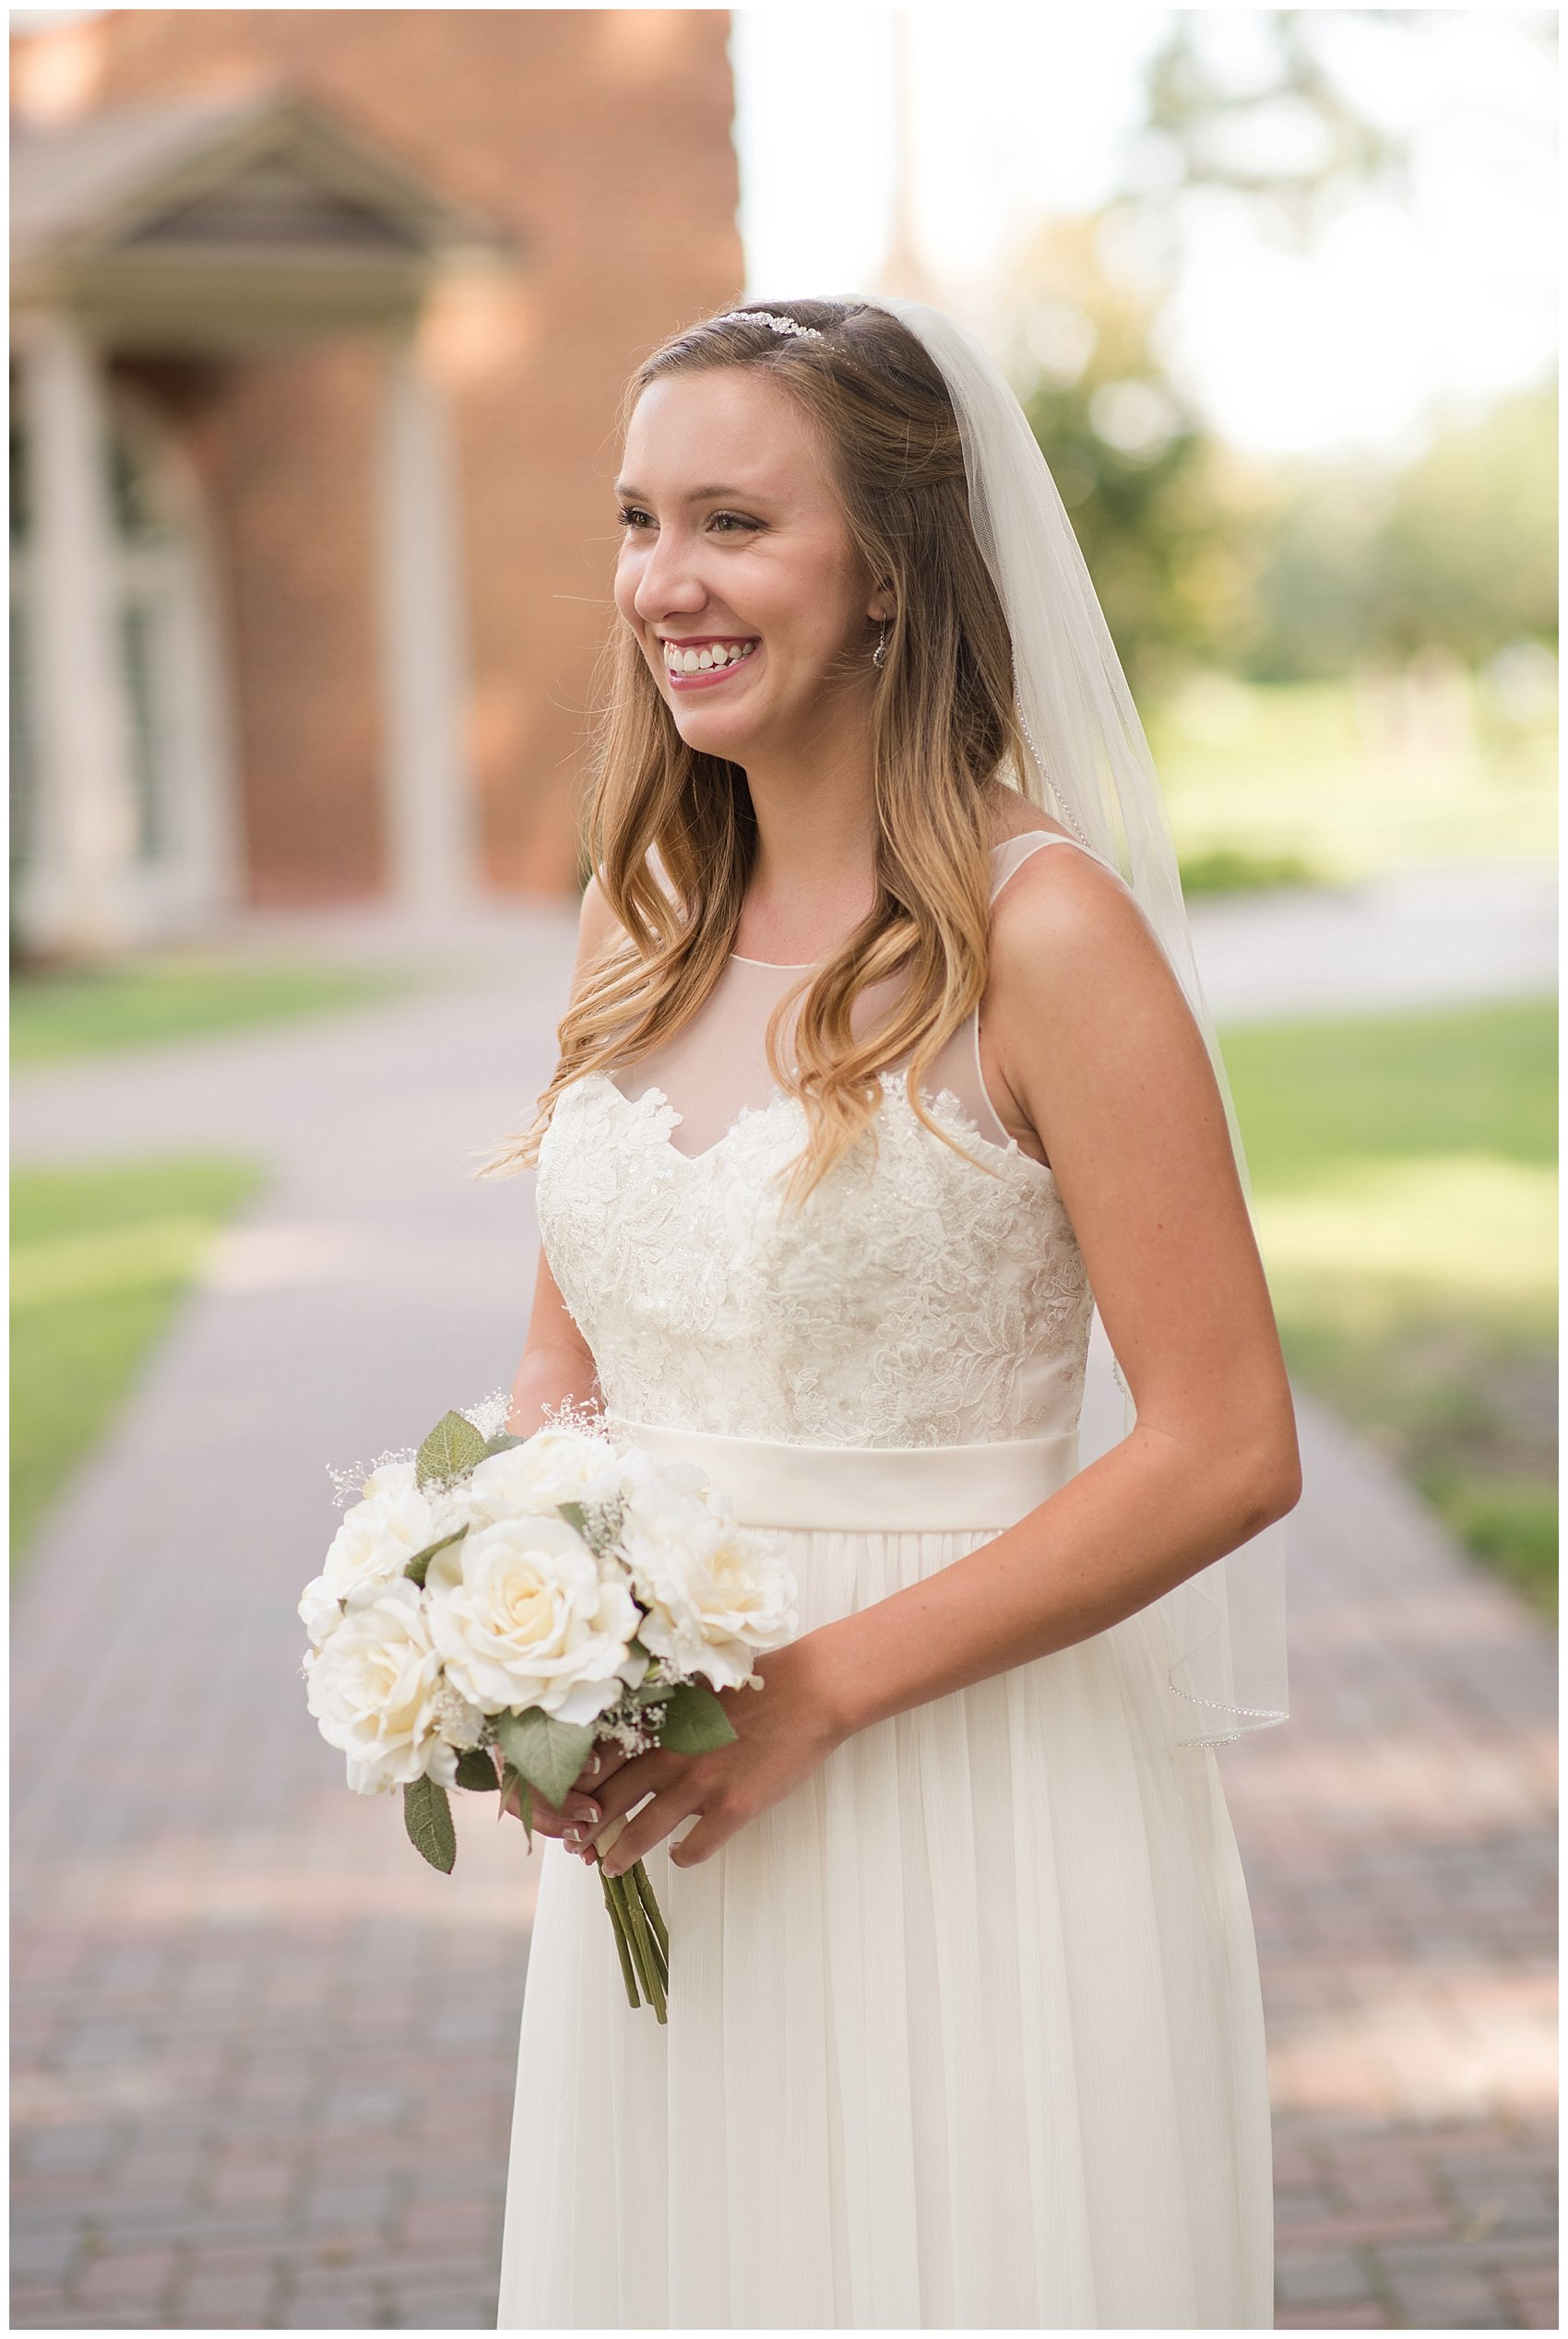 Blush Pink Summer Virginia Beach Wedding Regent University Founders Inn Bride and Groom Wedding Photographers_6053